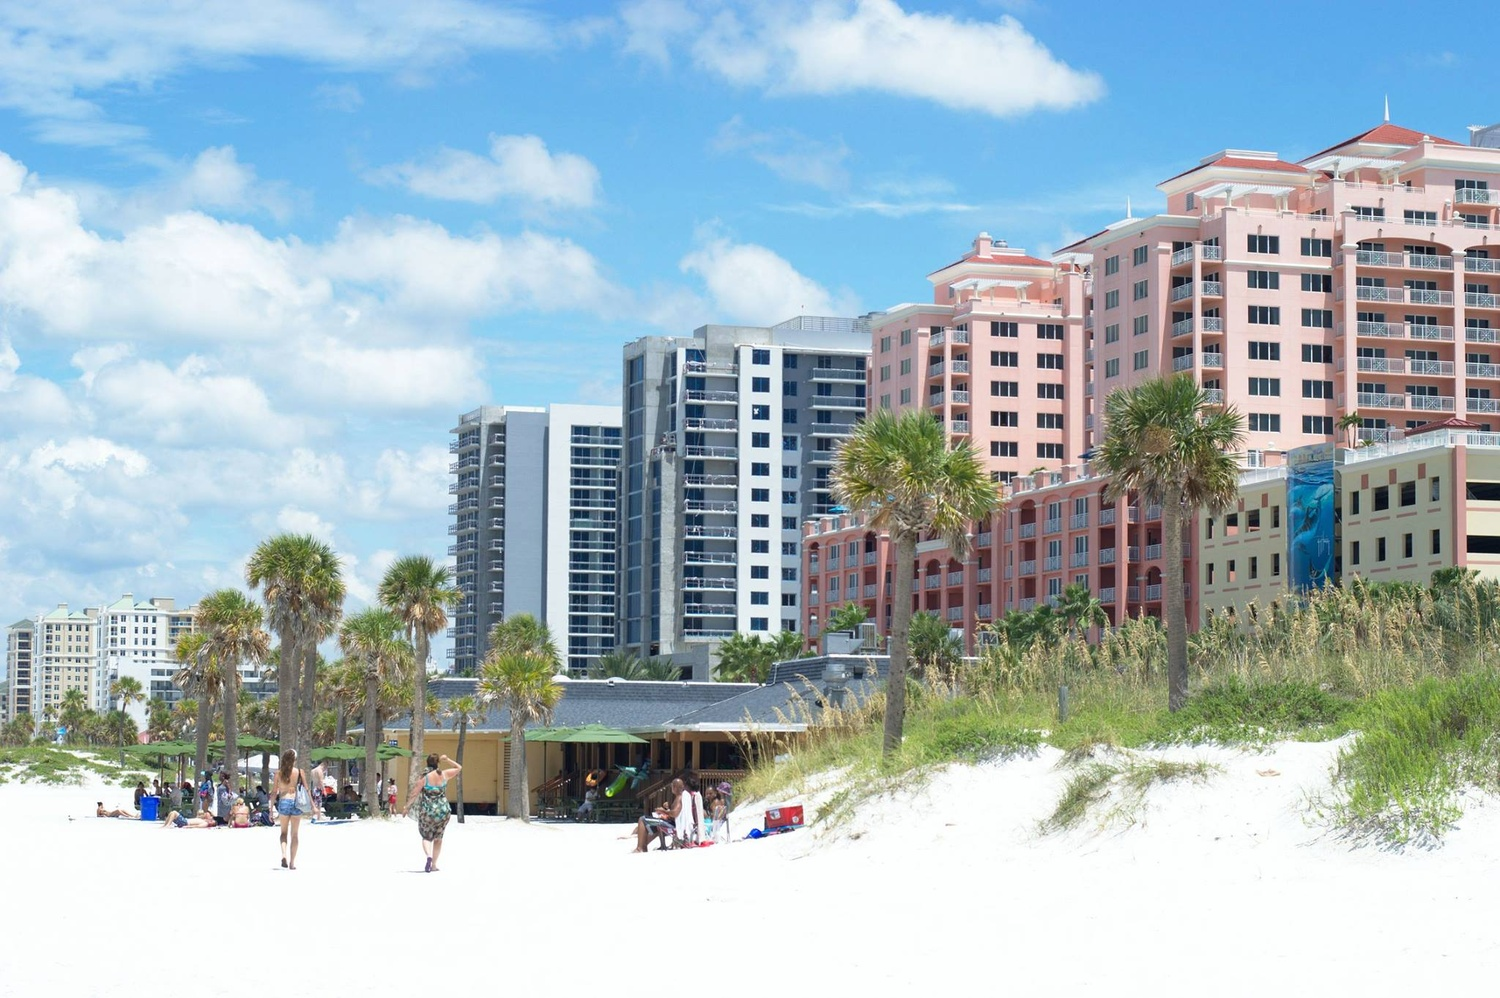 Clearwater beach by Mark Lilley